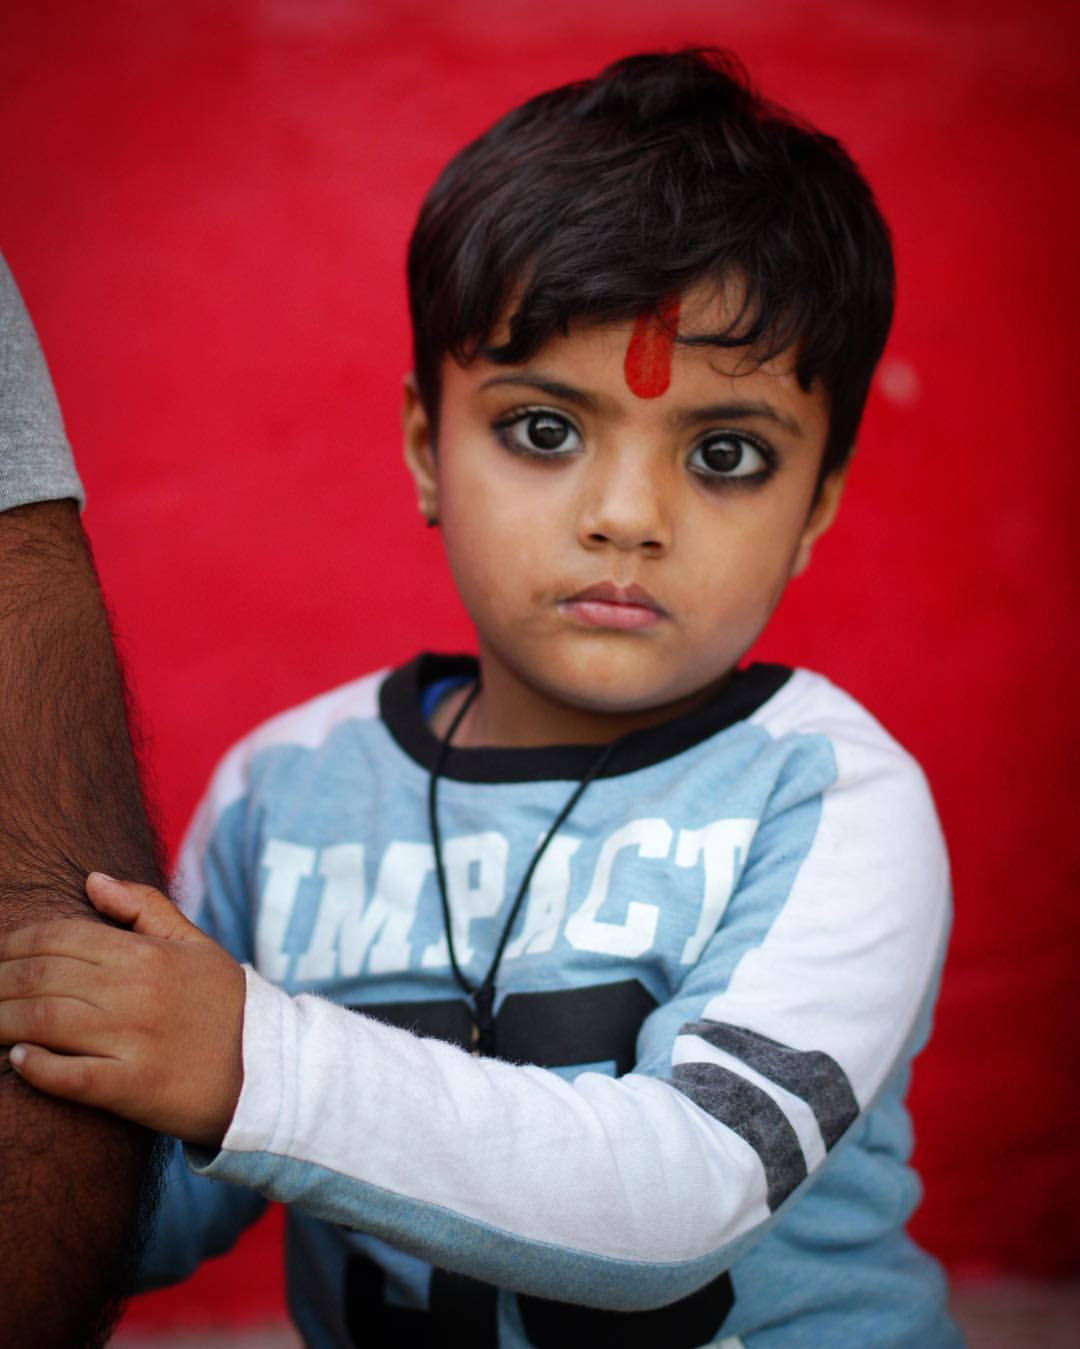 My camera adopted this kid's face.— in  Pushkar .